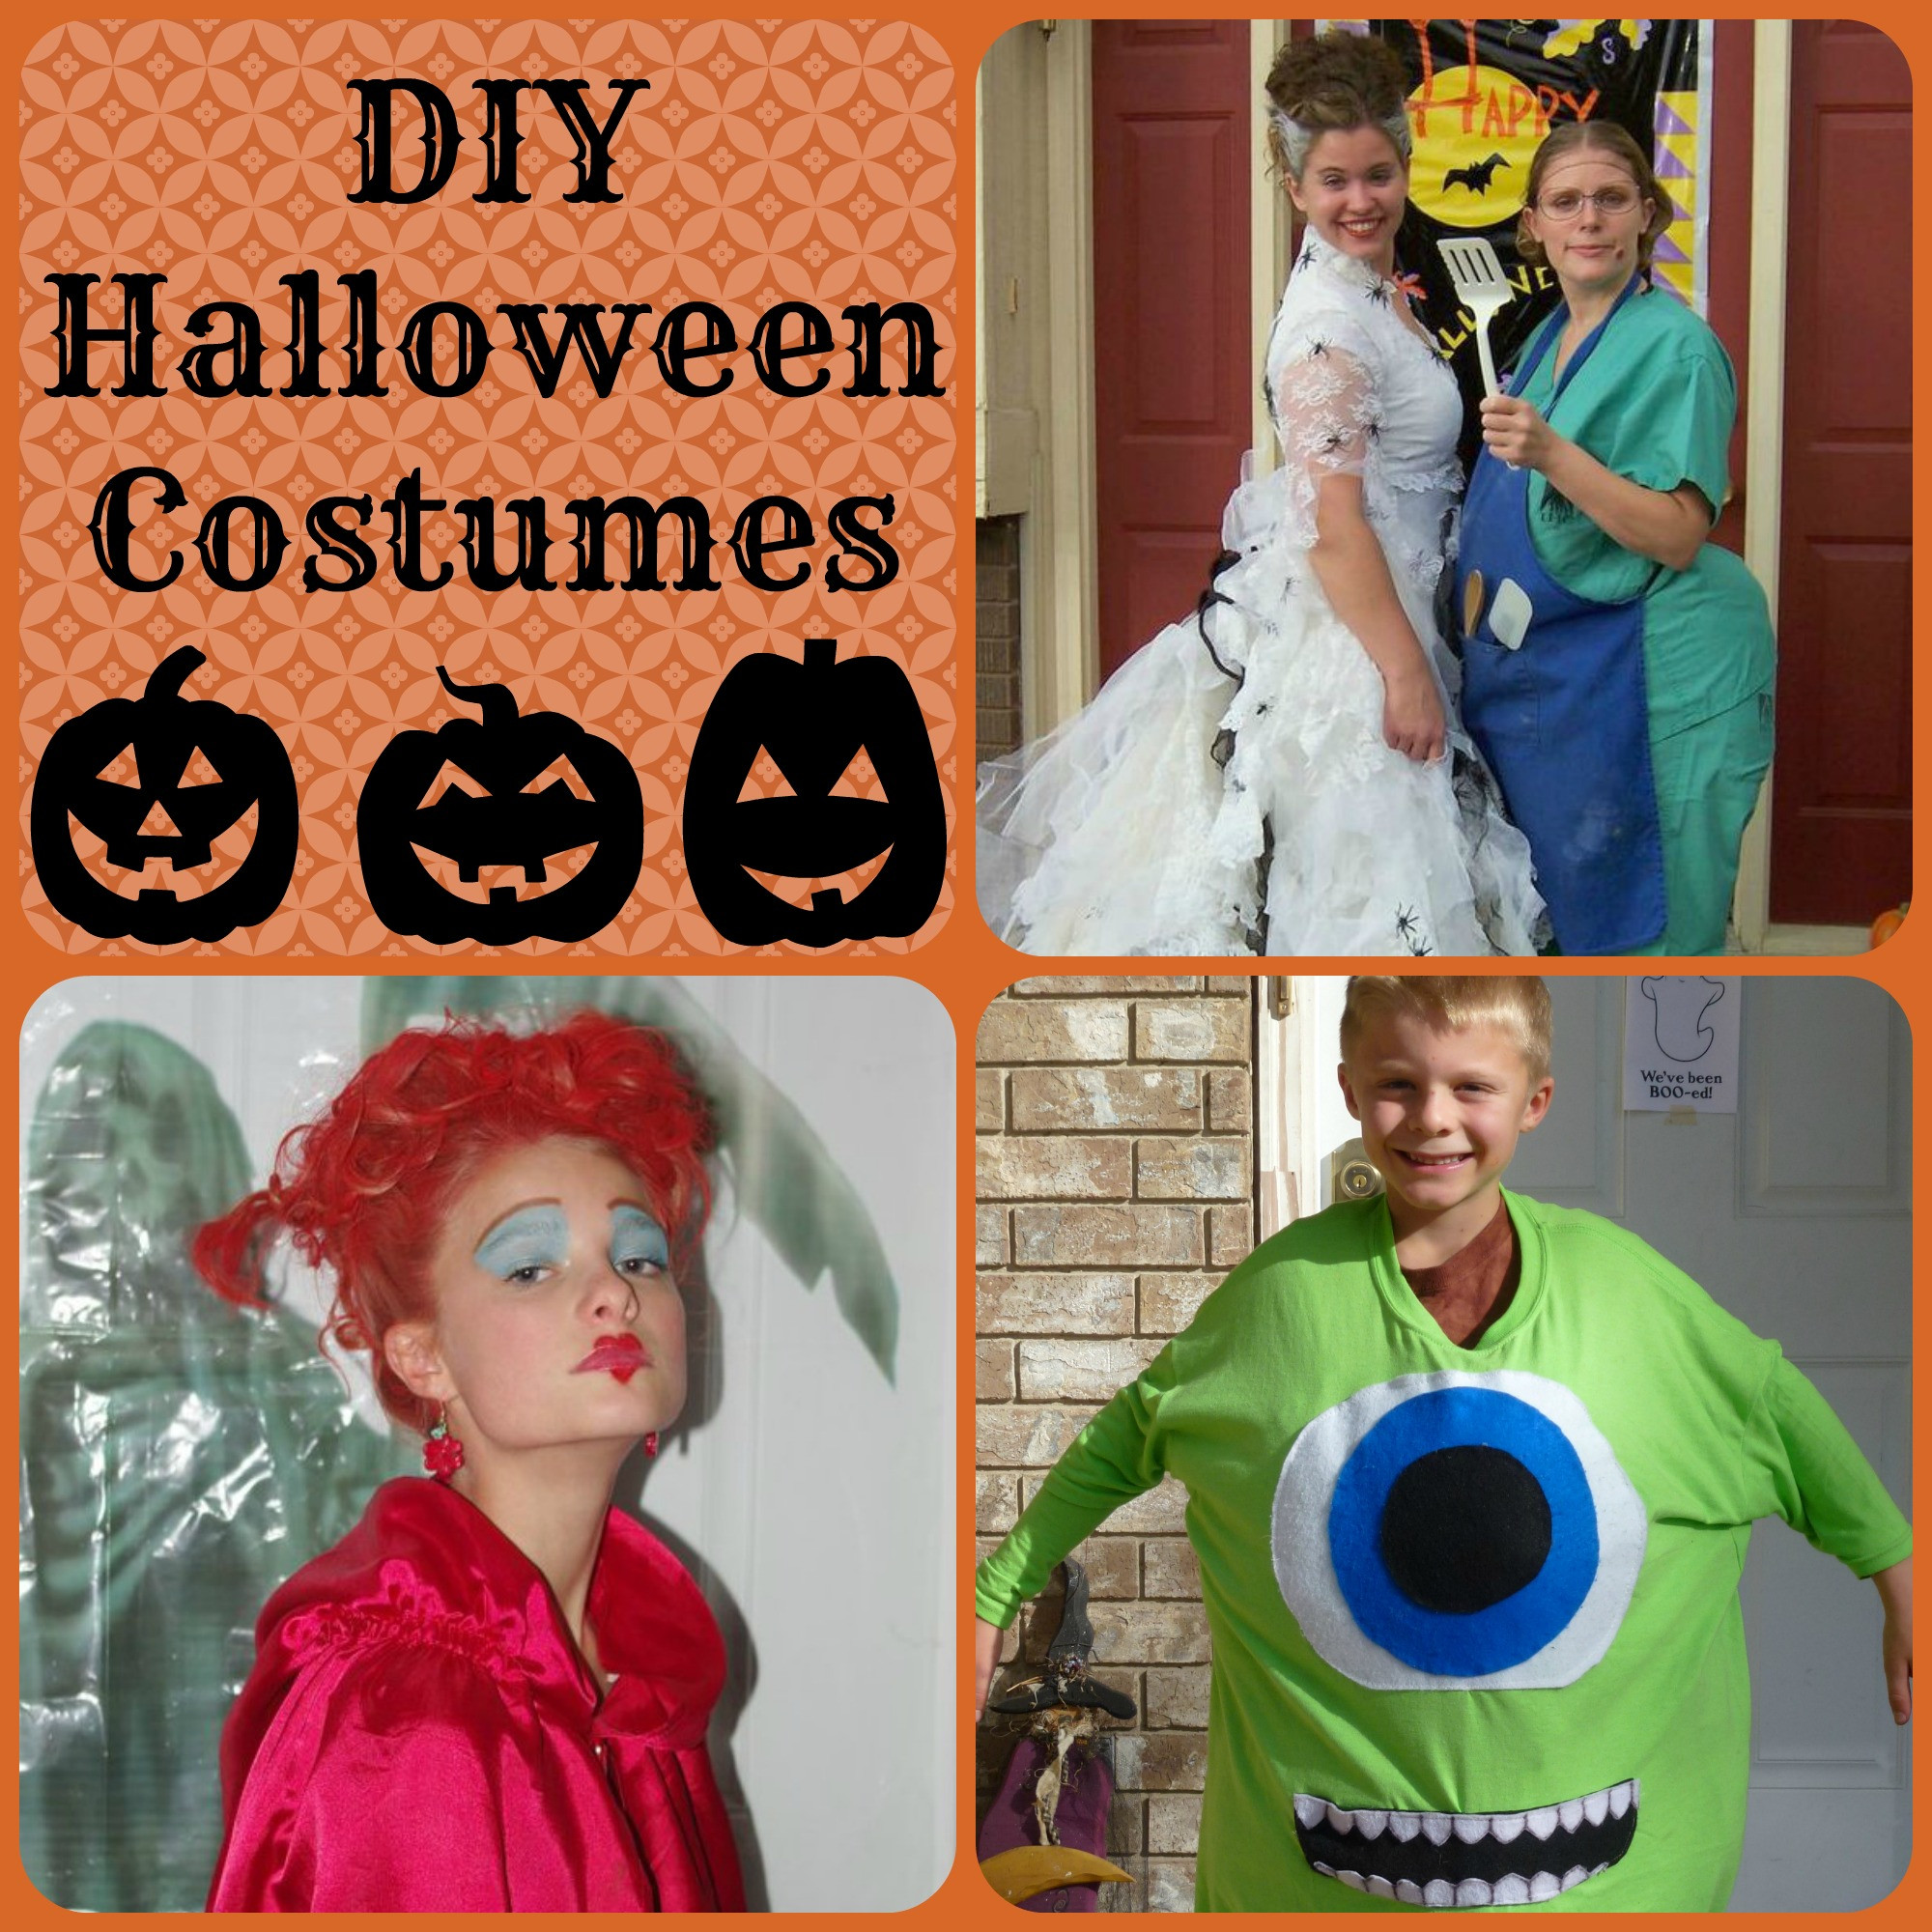 DIY Couple Costumes  Top Posts in 2013 events to CELEBRATE